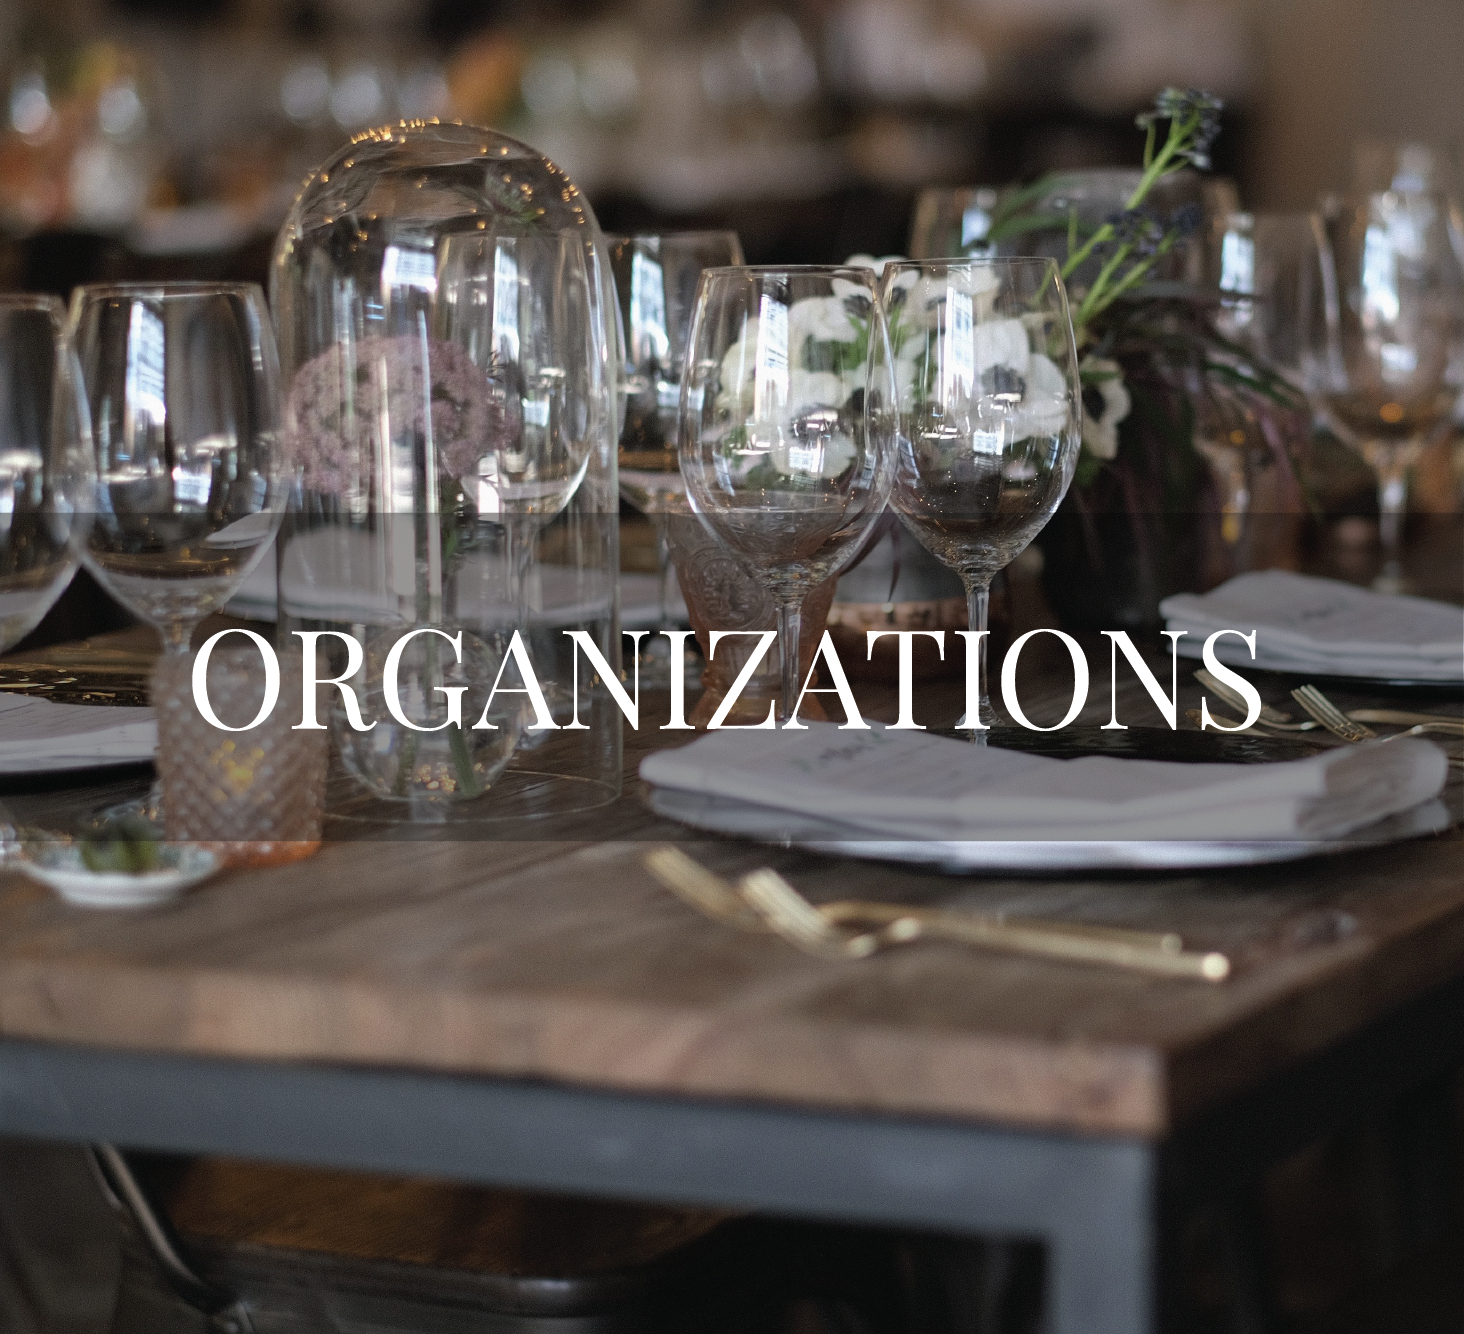 Is environmental sustainability and/or social consciousness an integral part of your organization's mission? Do you host events as a form of fundraising? Allow us to provide you with a plan that outlines steps to green your event. Uphold your mission by making a tangible impact on the environment and local community through your galas, fundraisers, lunches, dinners.